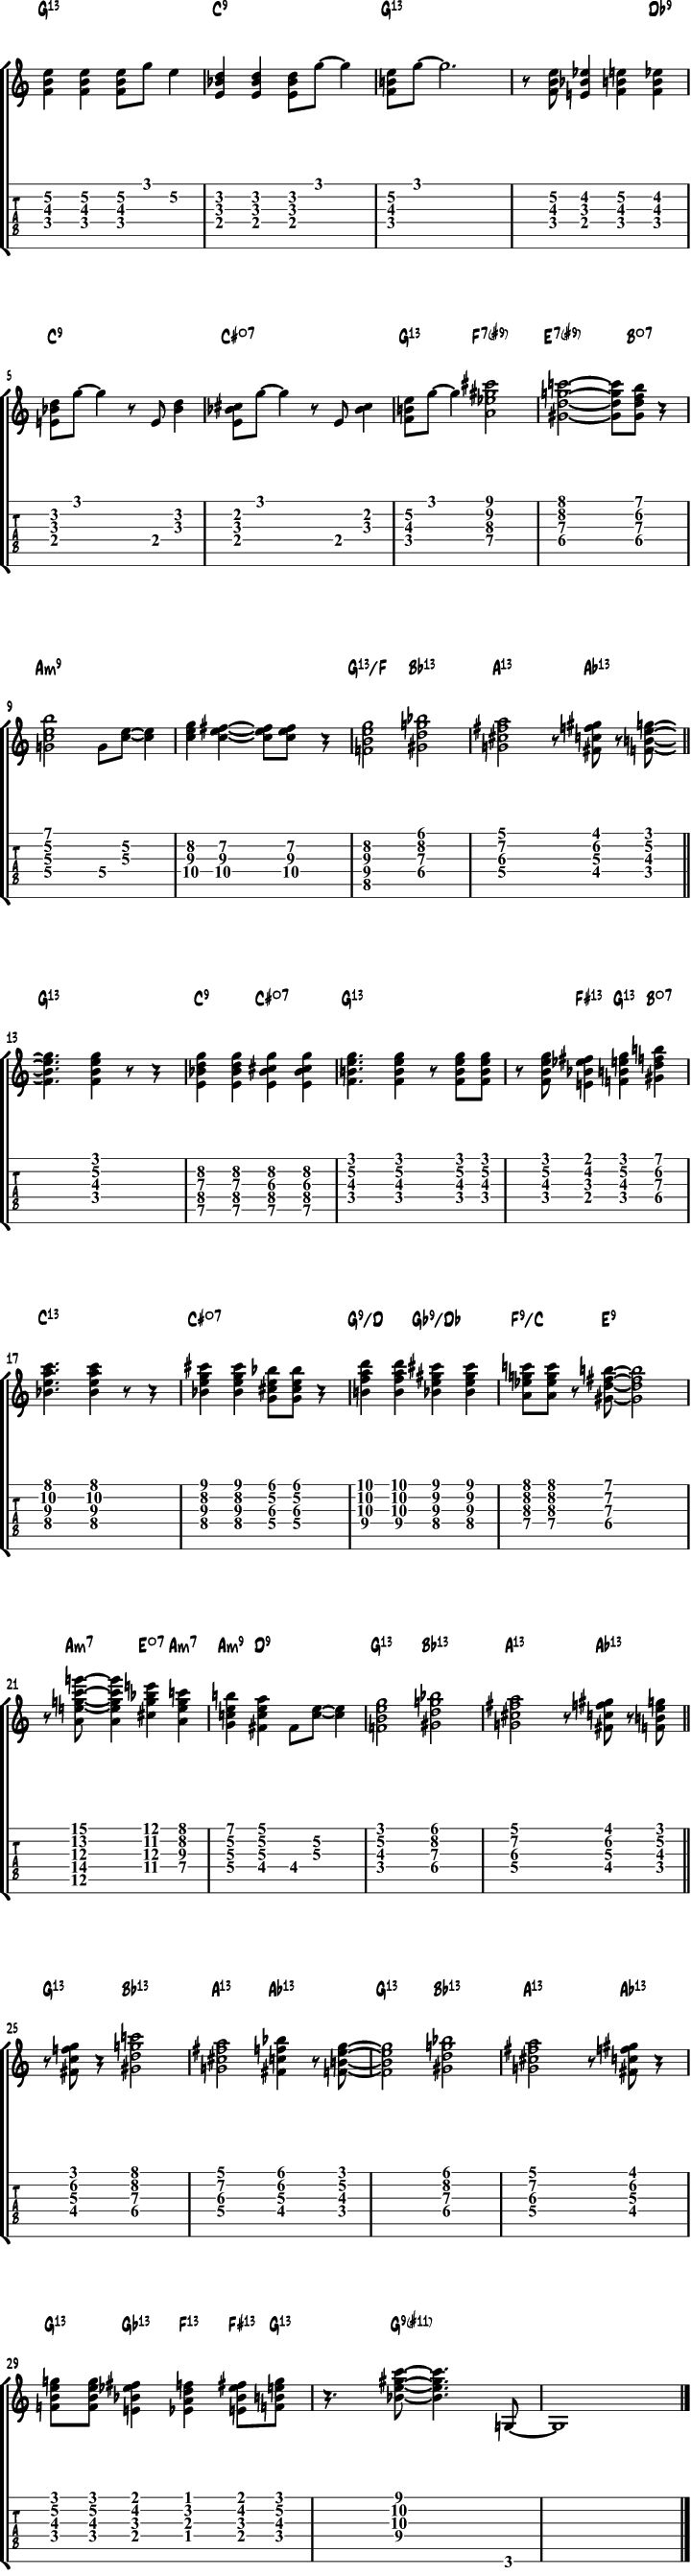 best 20 blues guitar chords ideas on pinterest music theory guitar blues guitar lessons and